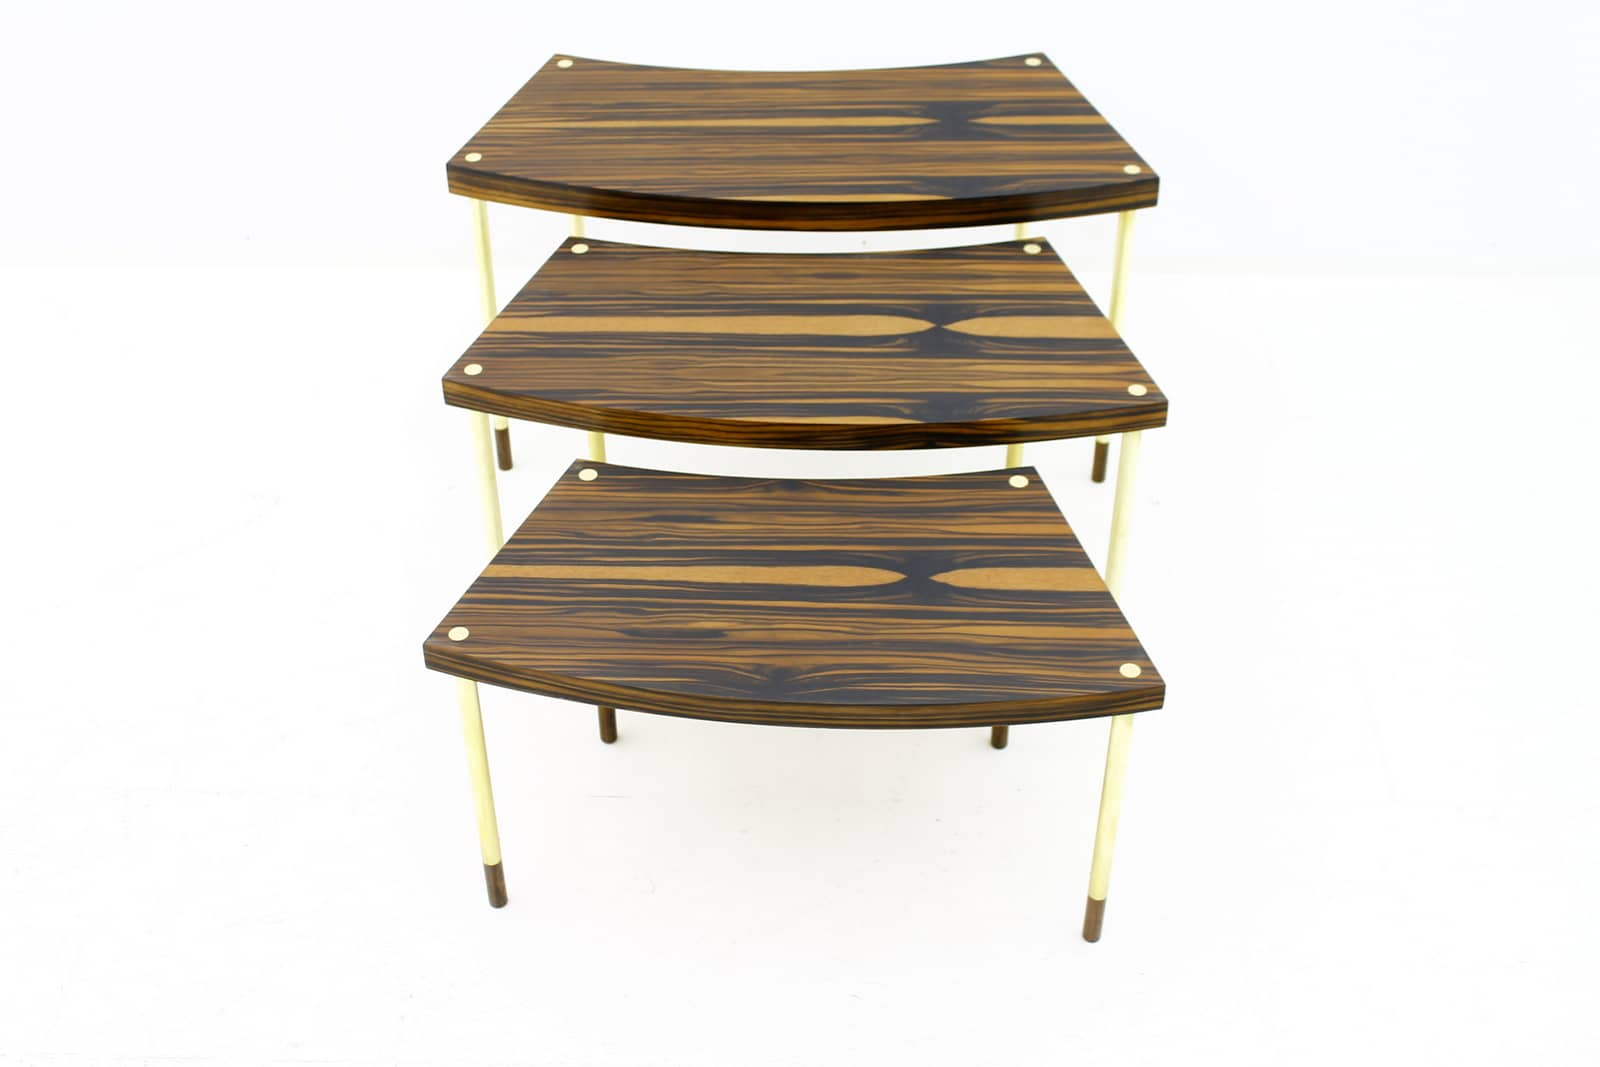 Nesting Tables in Macassar and Brass, 1970s